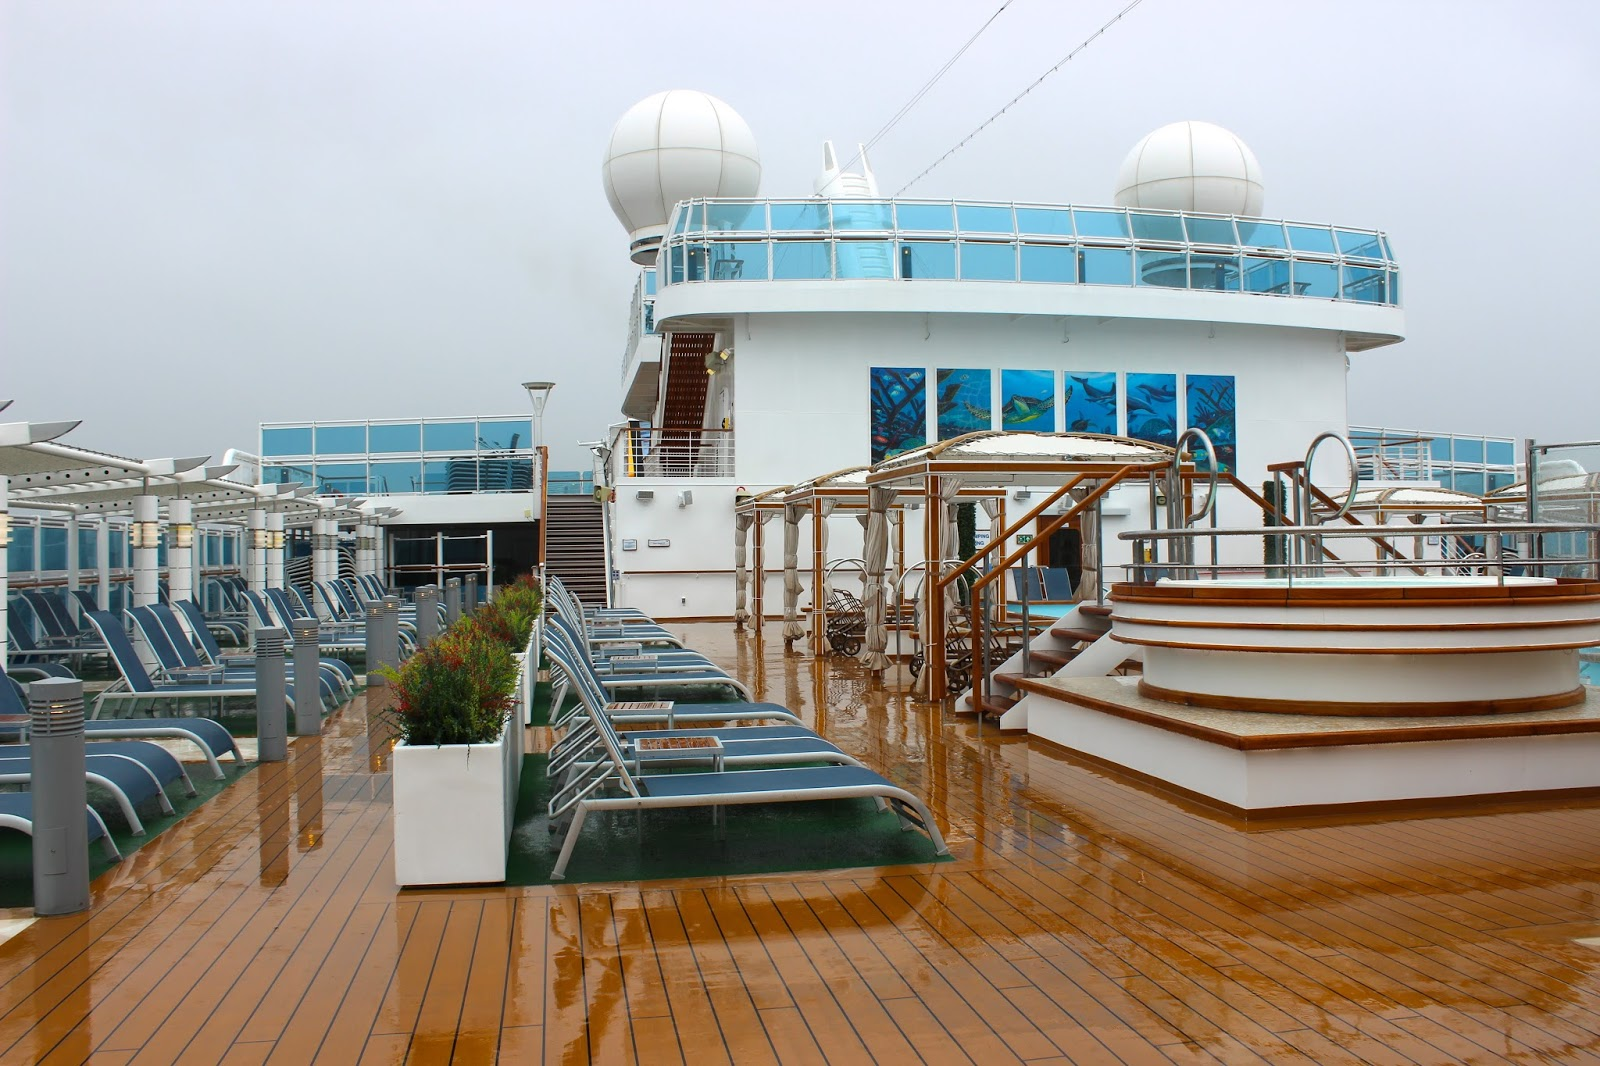 The Royal Princess Cruise Ship - Upper Deck